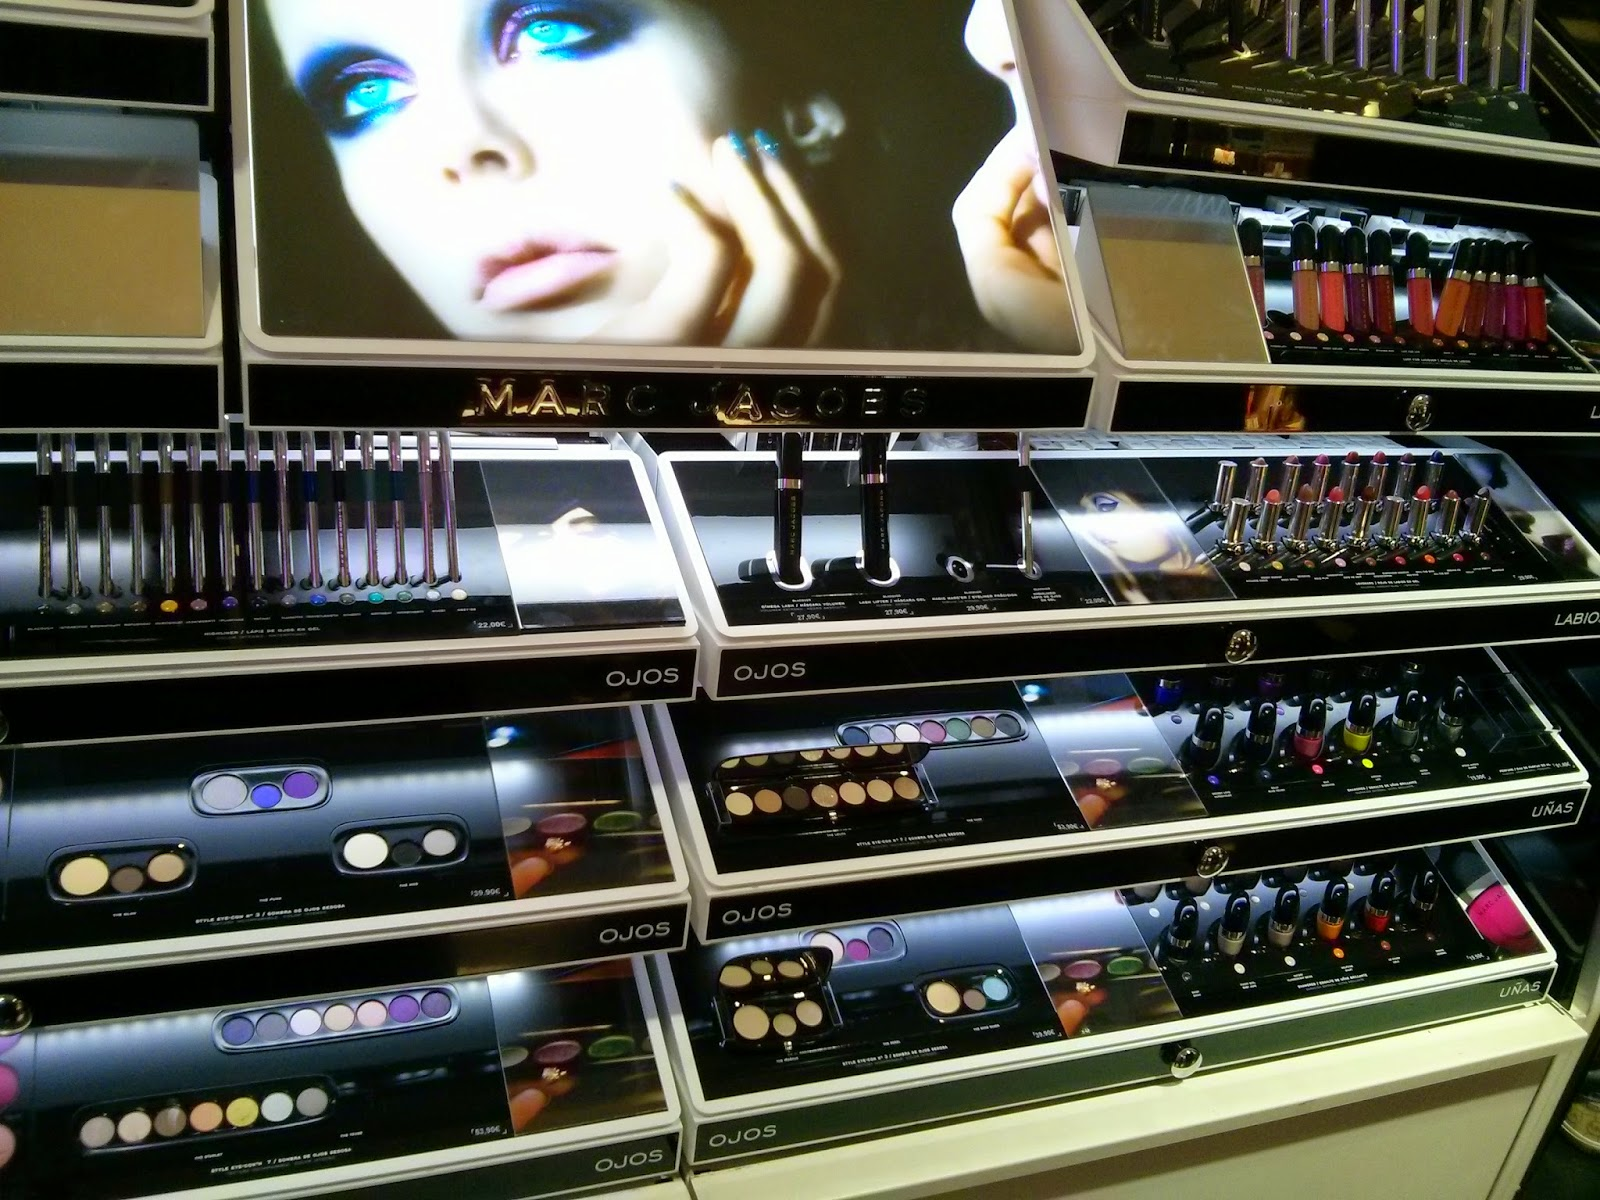 VipandSmart Marc Jacobs Beauty expositor